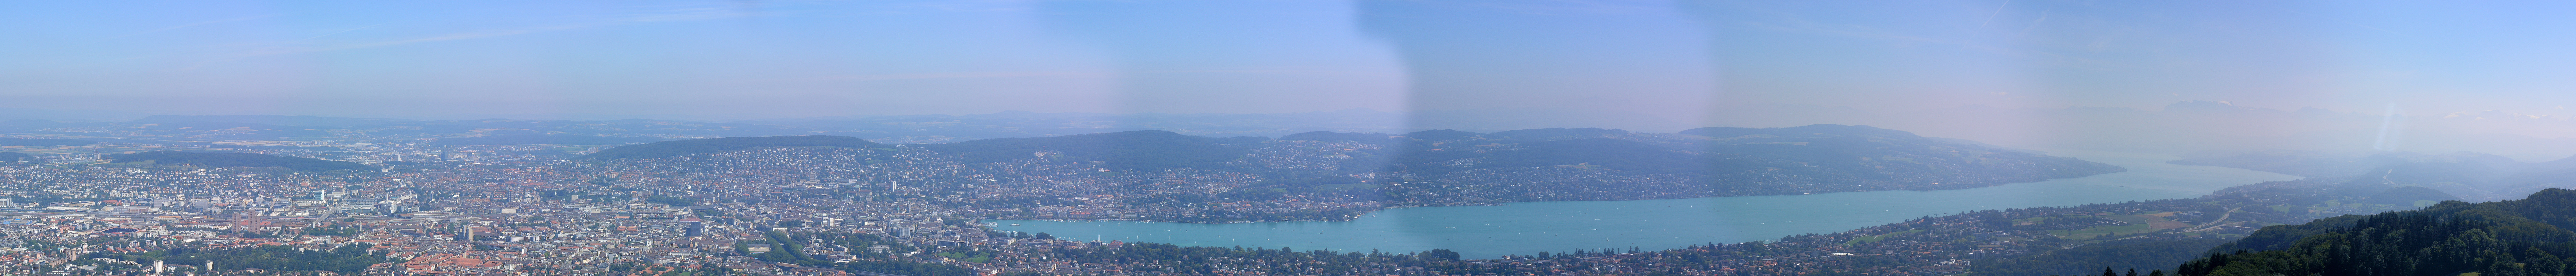 Zurich lake and city (septuple head)